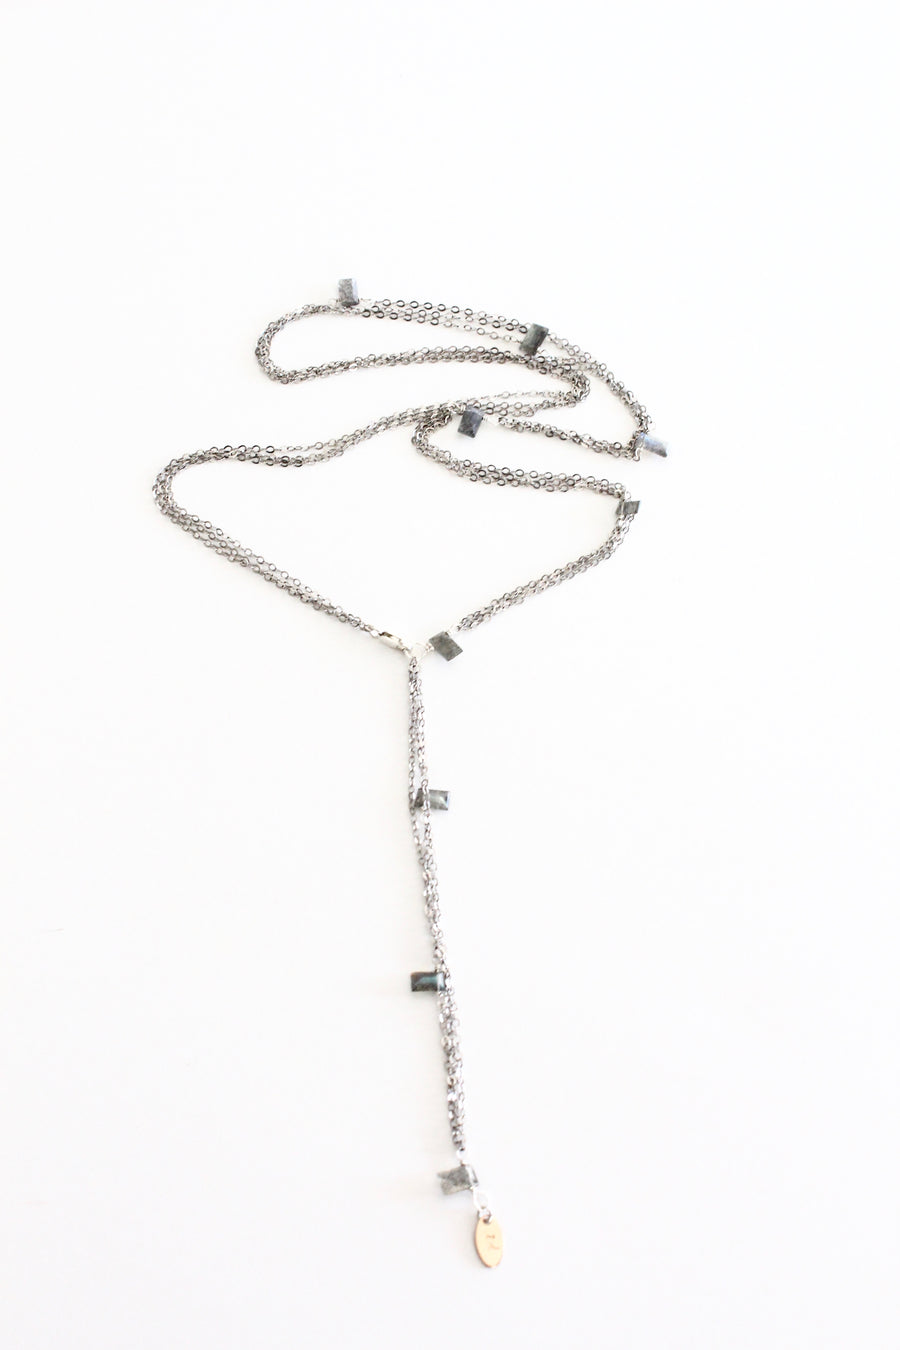 Silver Strands Convertible Chain